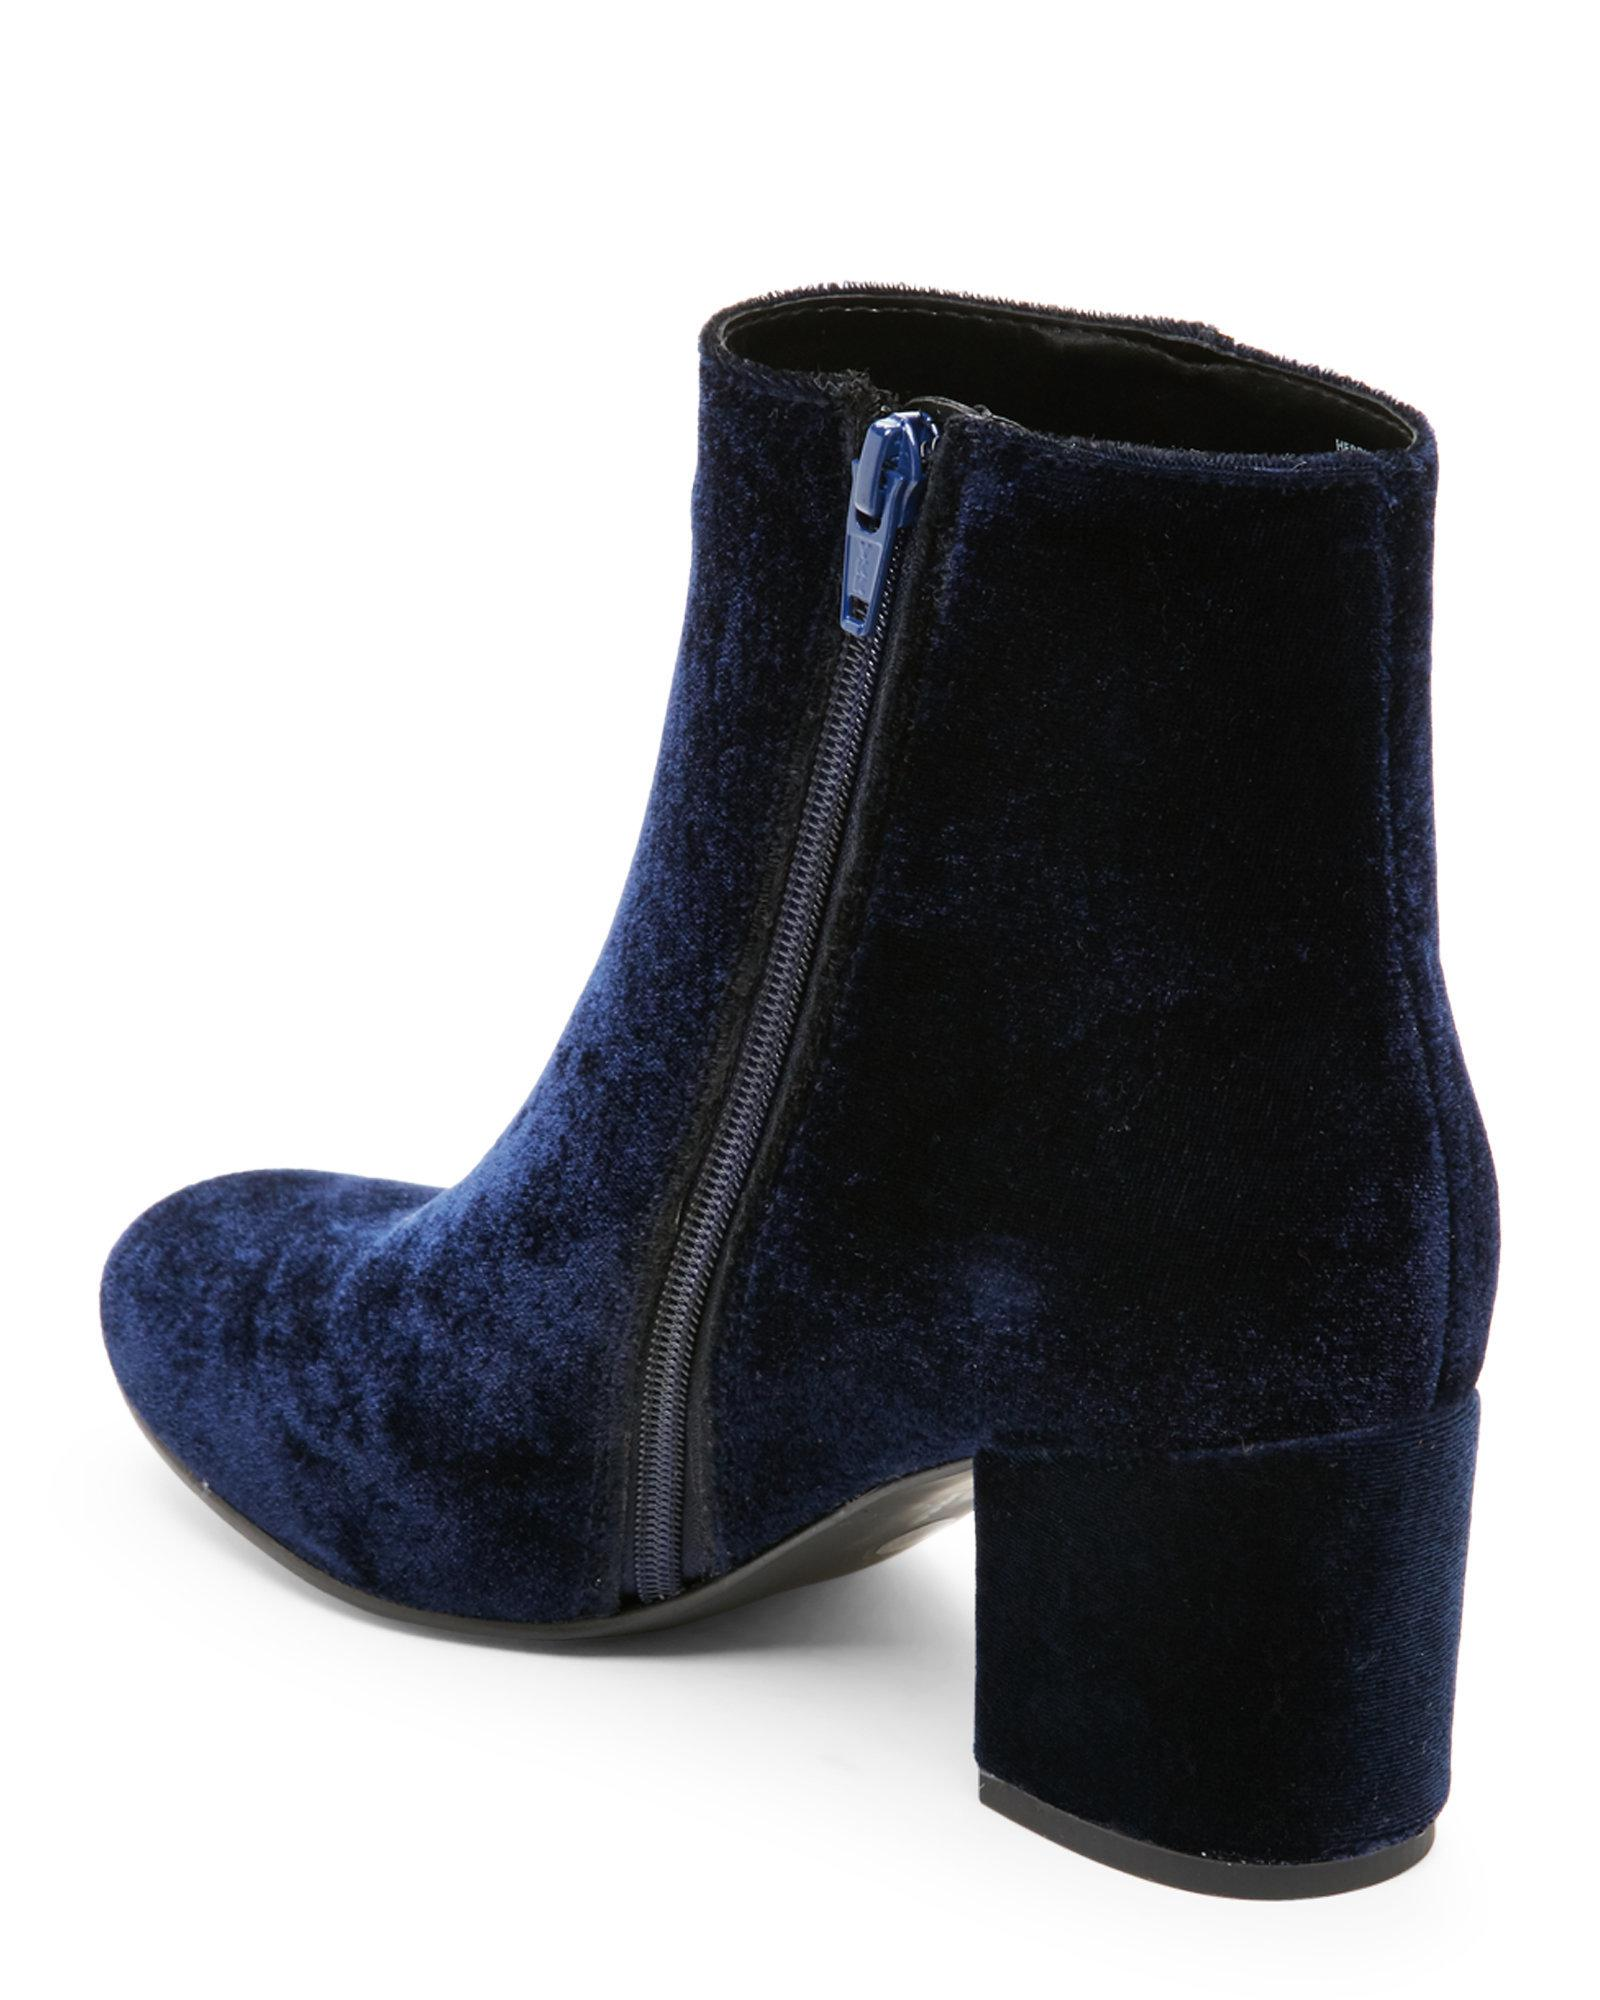 5ea726a53e6 Steve Madden Block Heel Boots - Best Picture Of Boot Imageco.Org